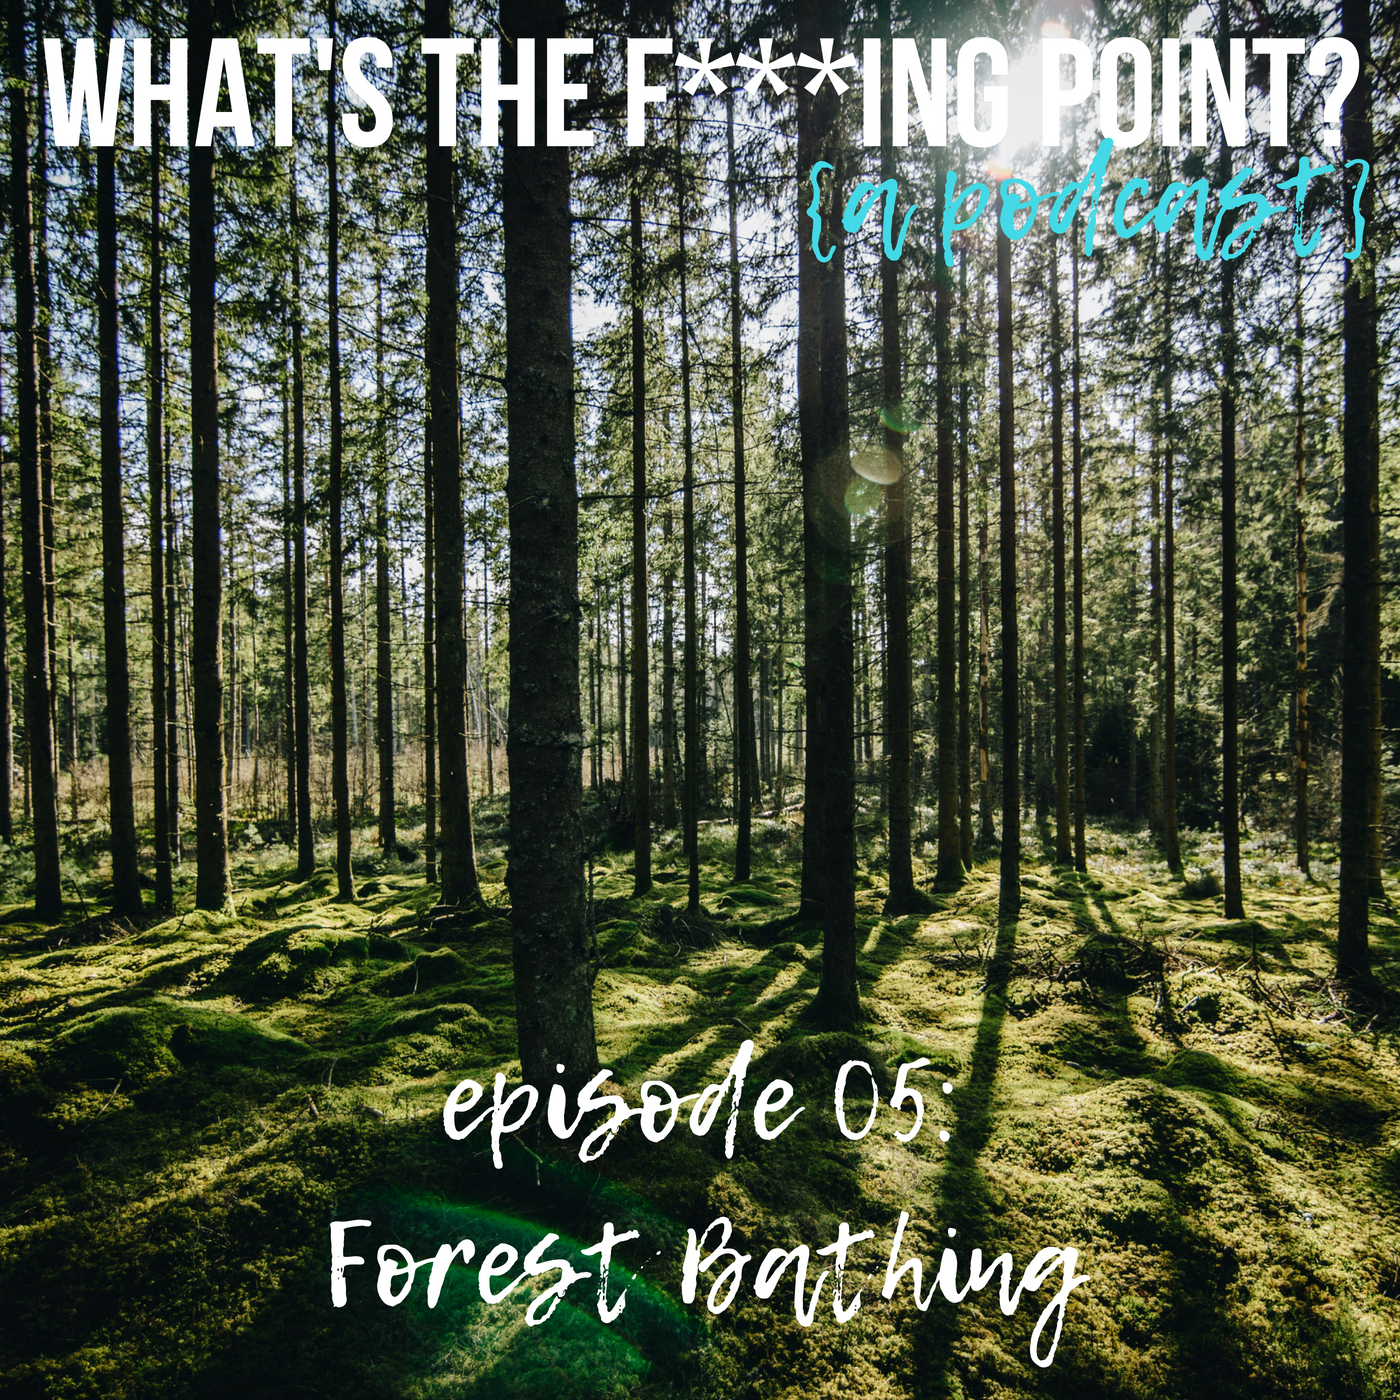 forestbathing-WTFP